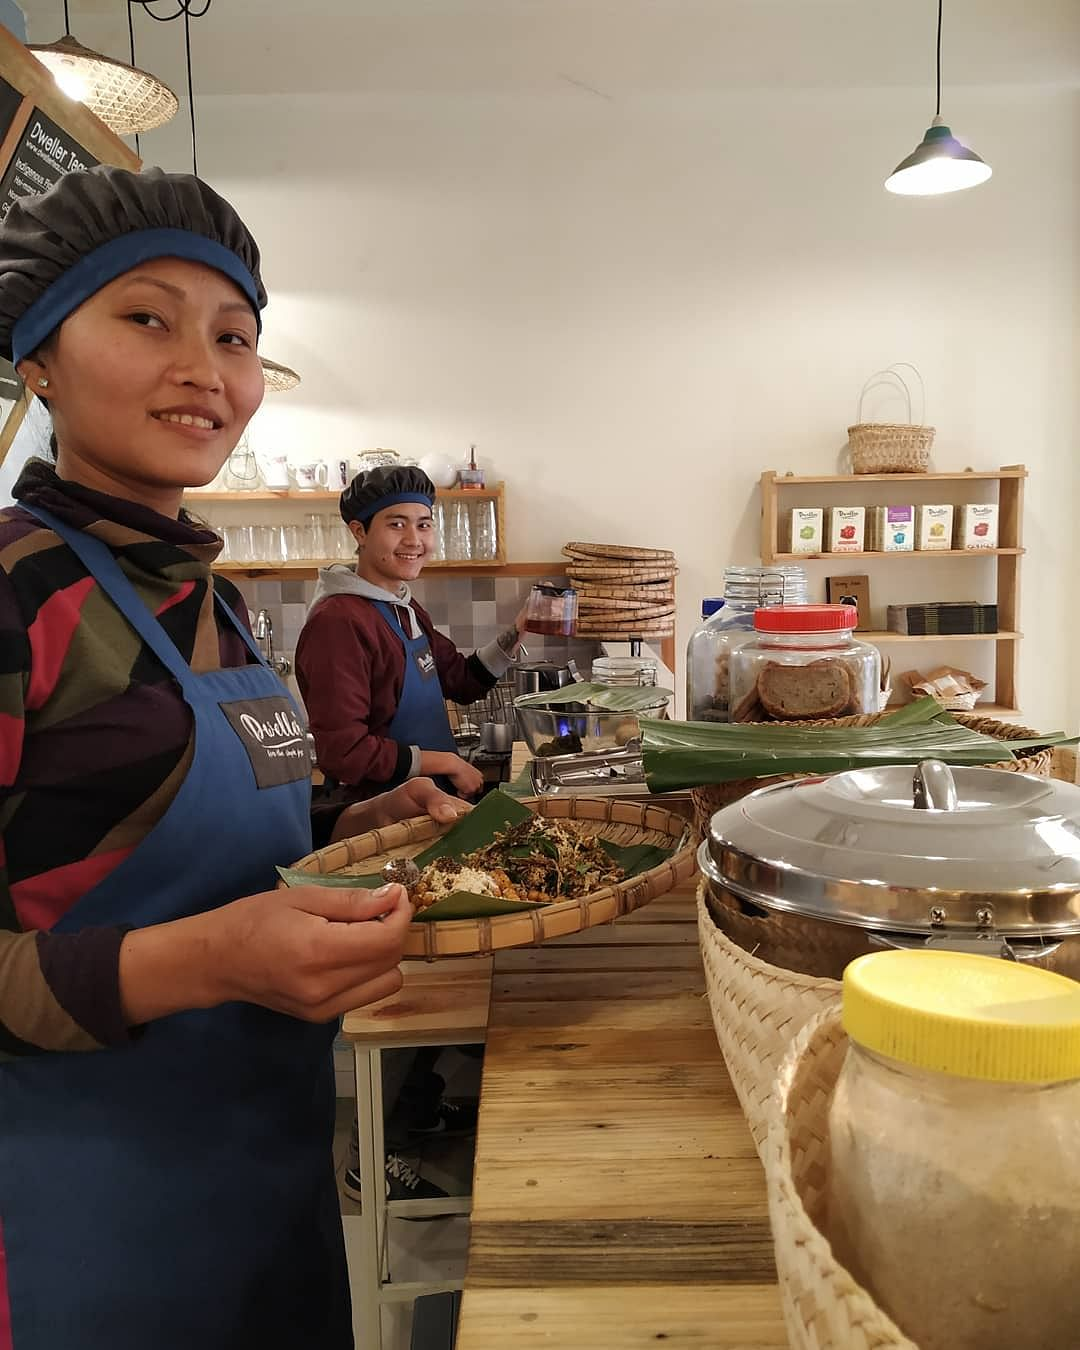 Elizabeth Yambem opened a second outlet of Dweller Teas in Imphal in May